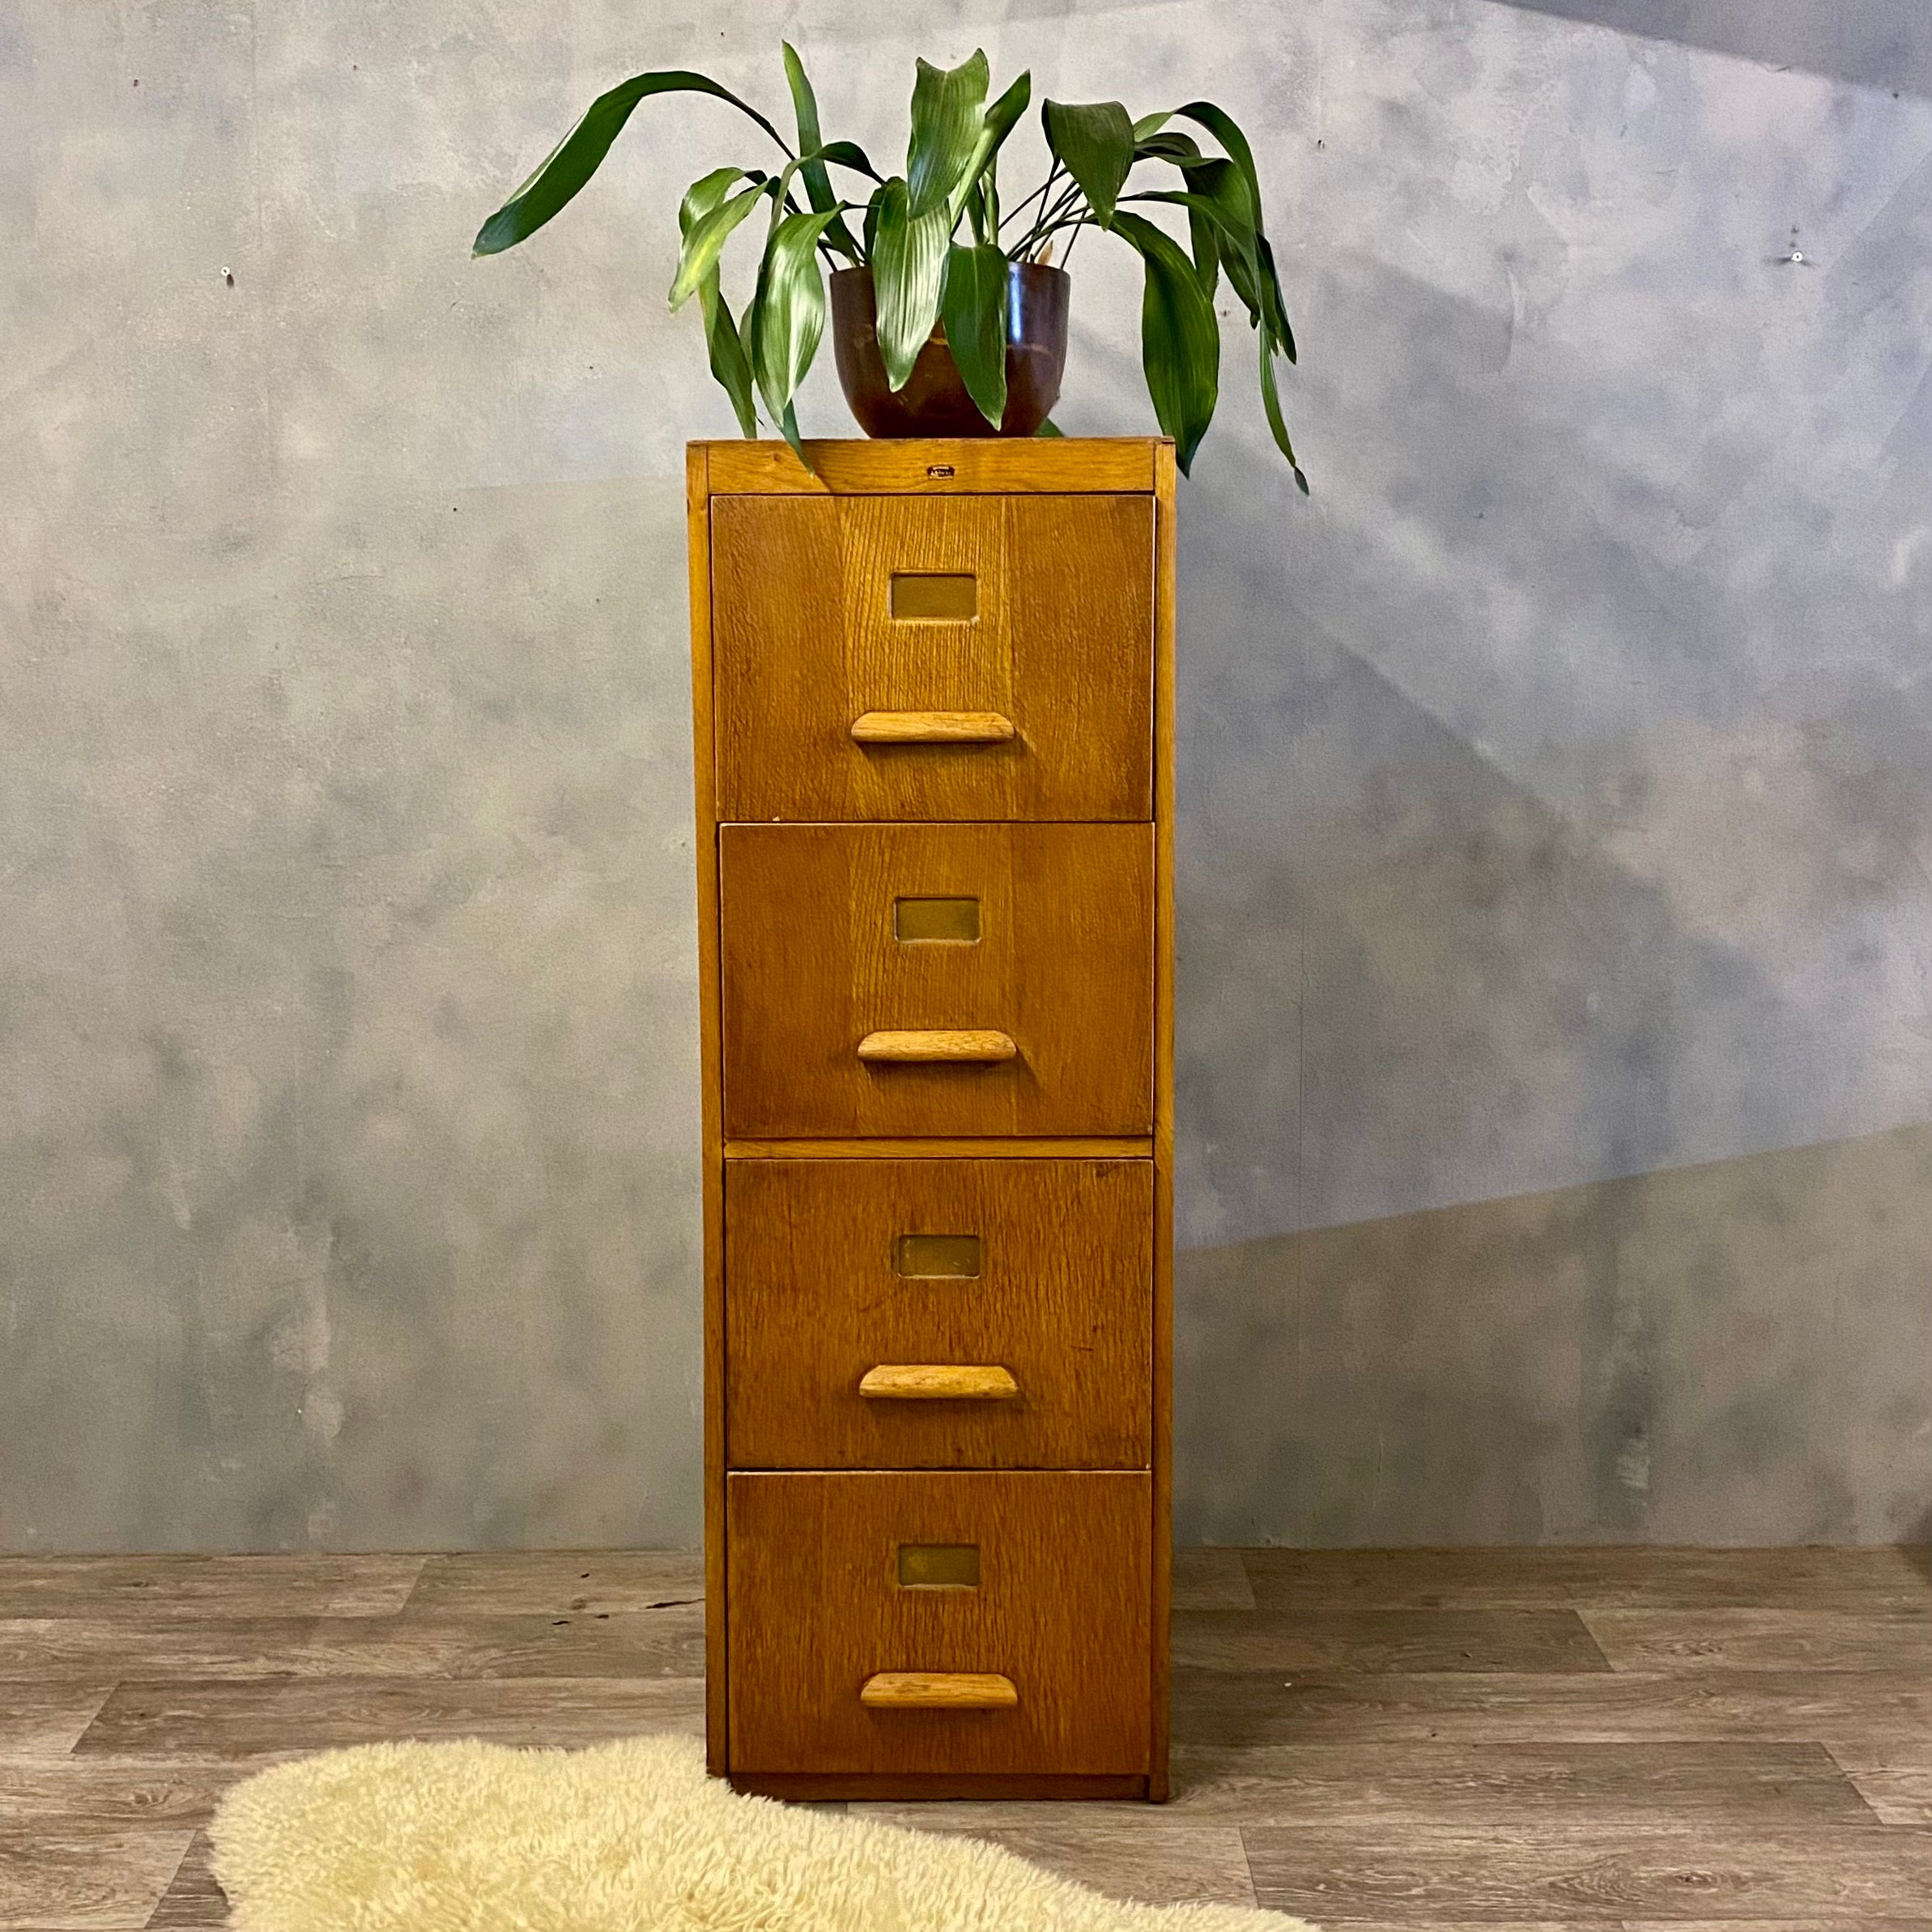 Midcentury Filing Cabinet In Plywood And Oak